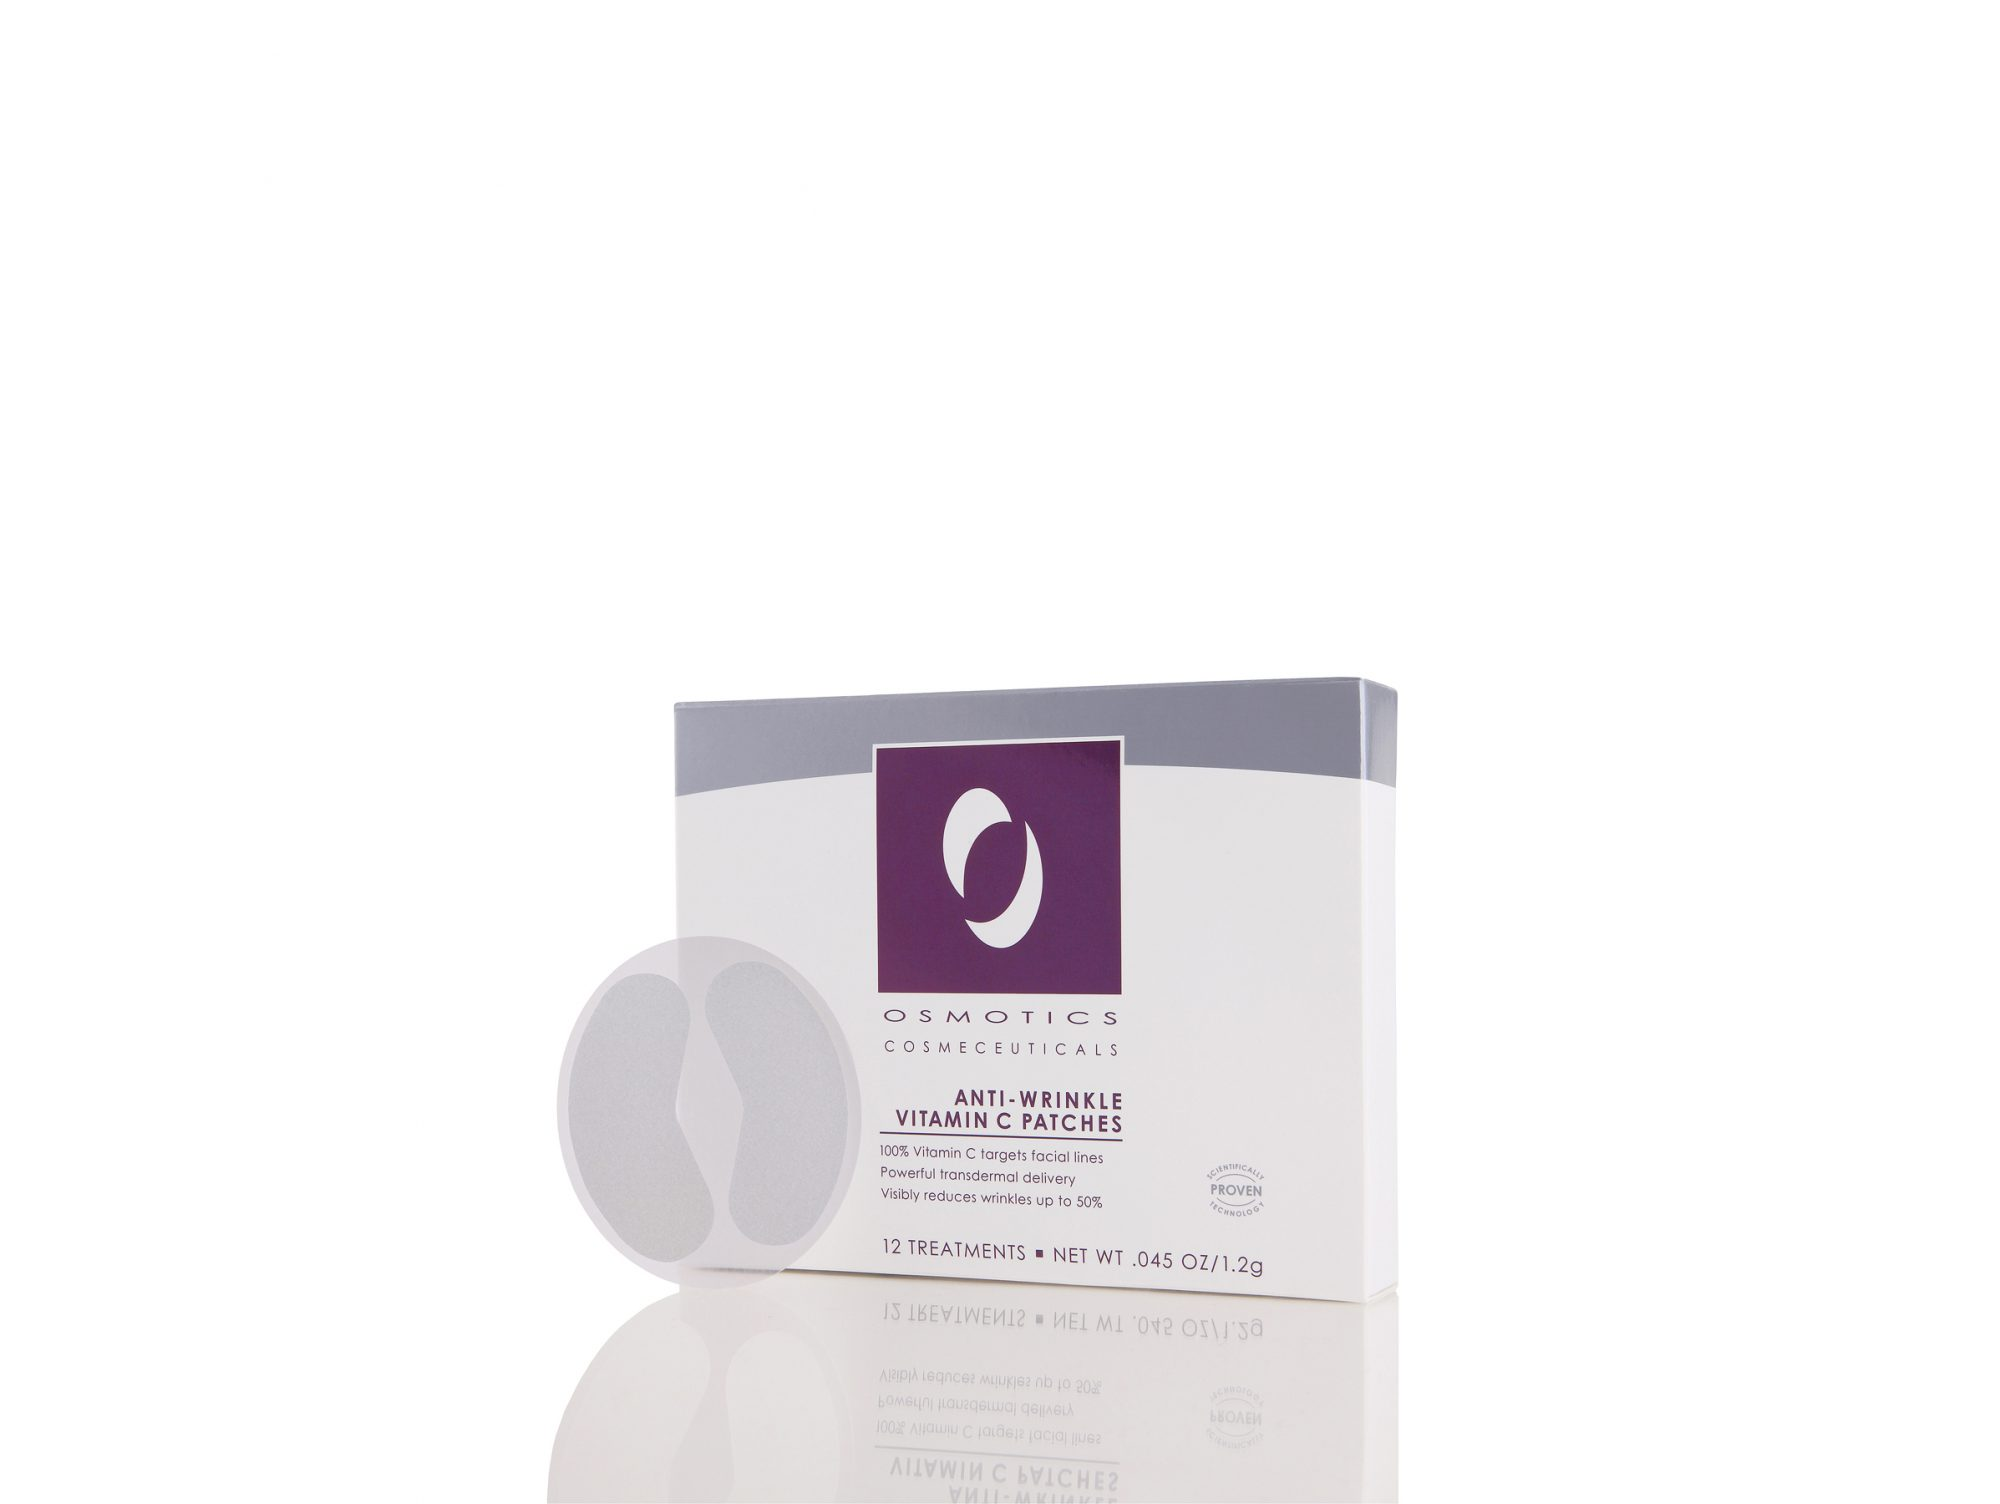 osmotics vitamin c antiwrinkle patches